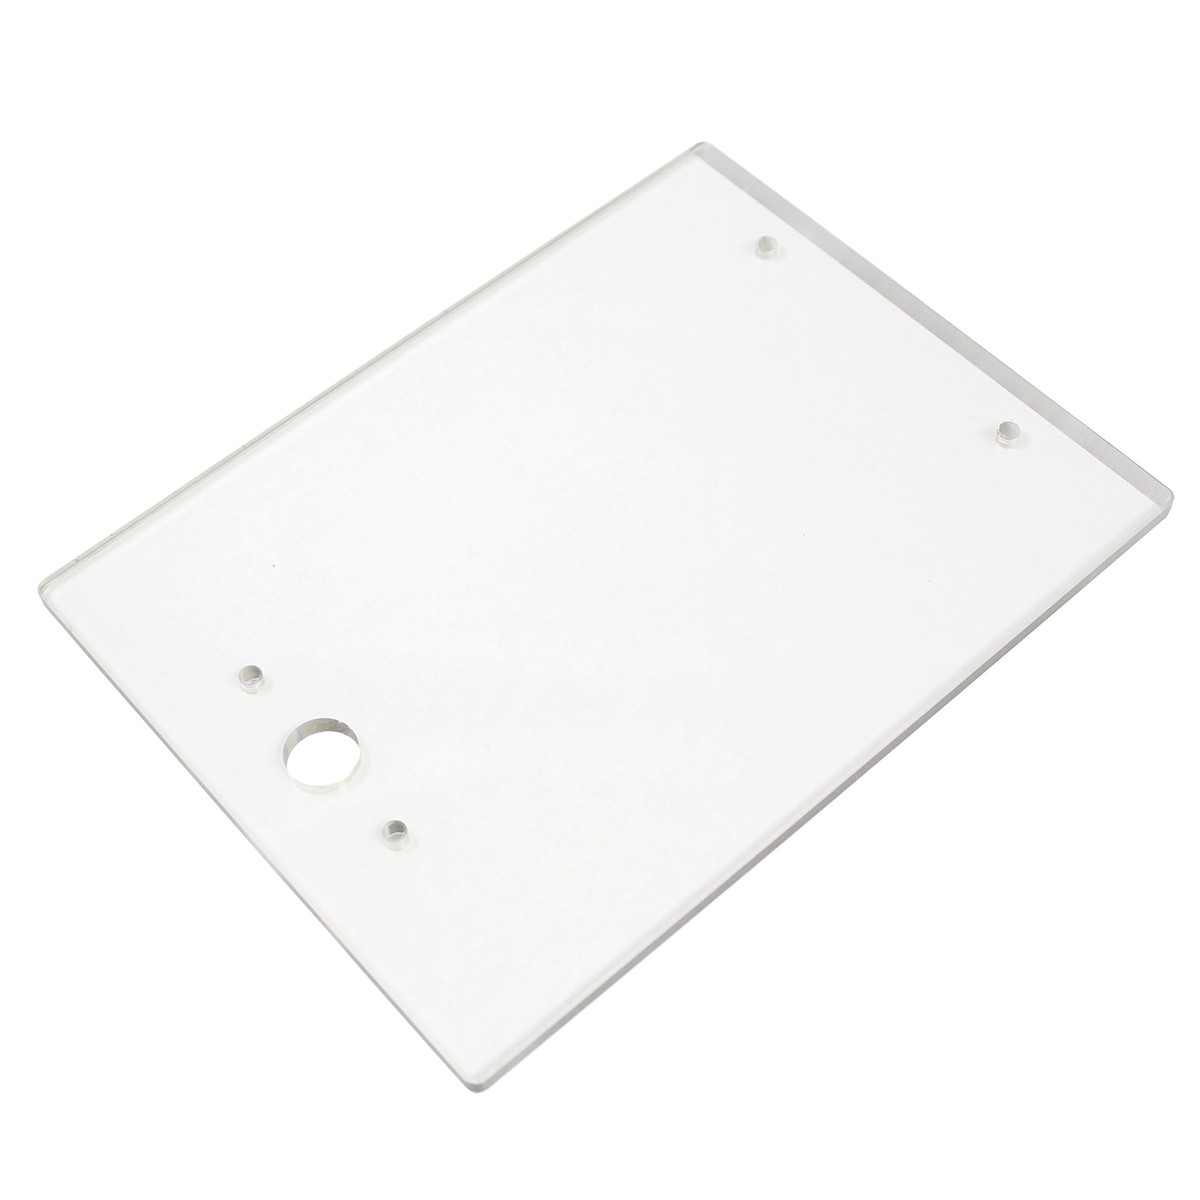 Replacement Window For E-Z View / E-Z Sand Blaster